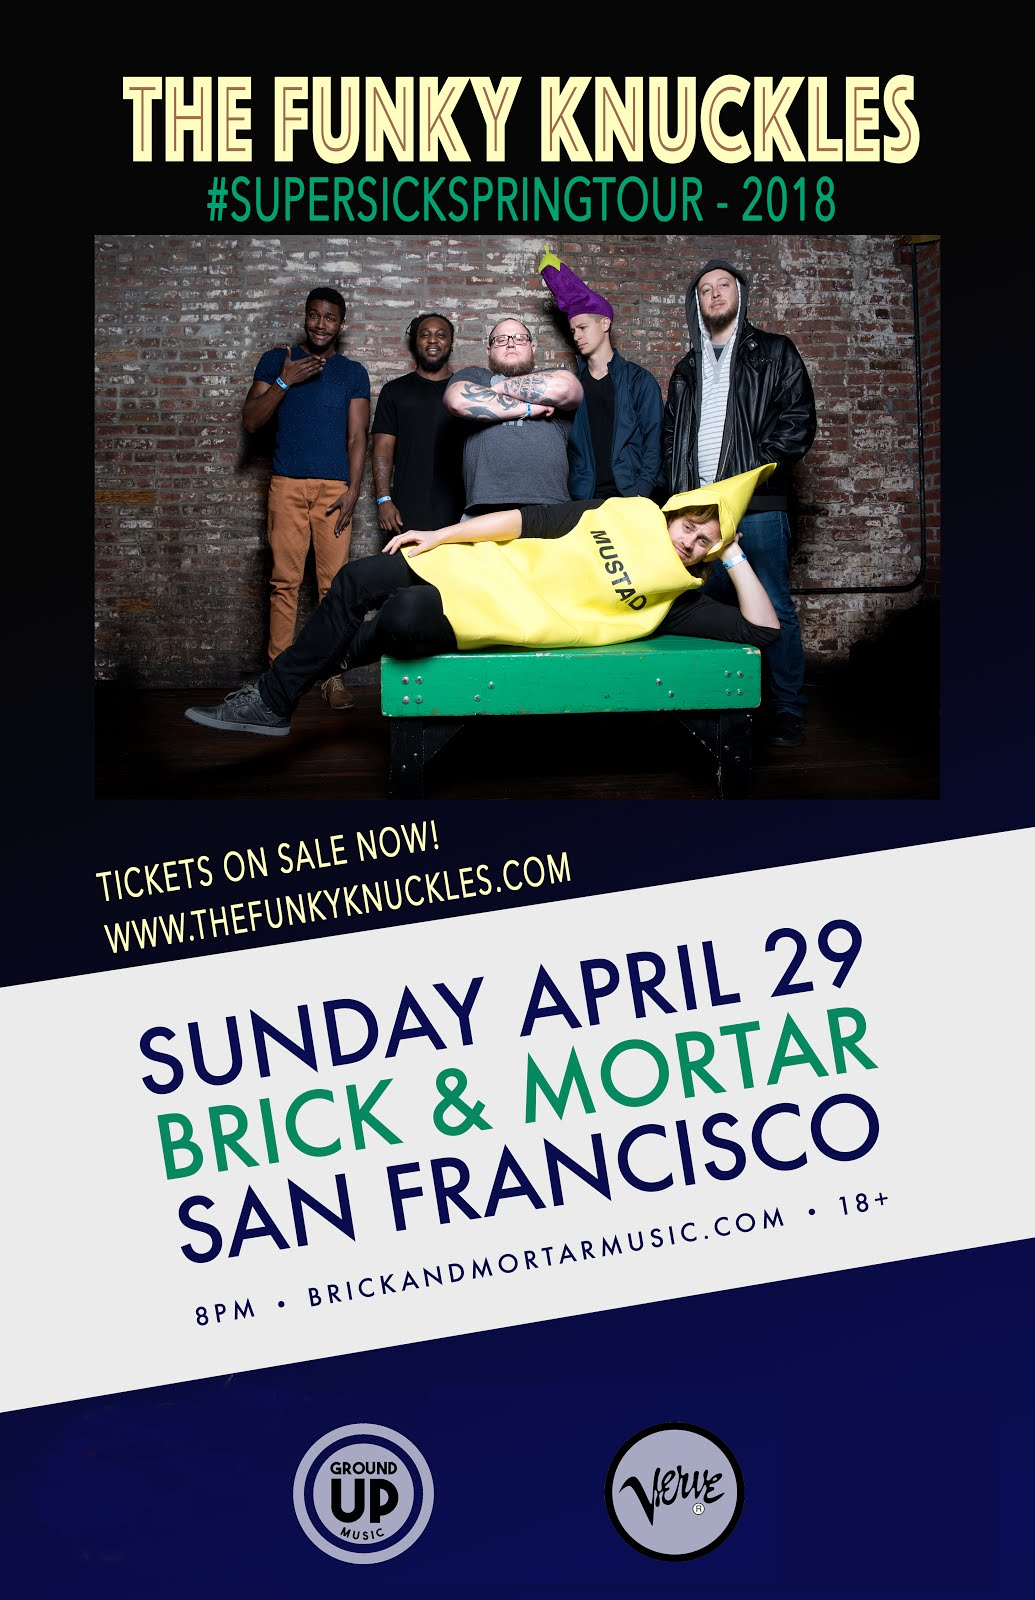 4/29 : The Funky Knuckles at Brick & Mortar